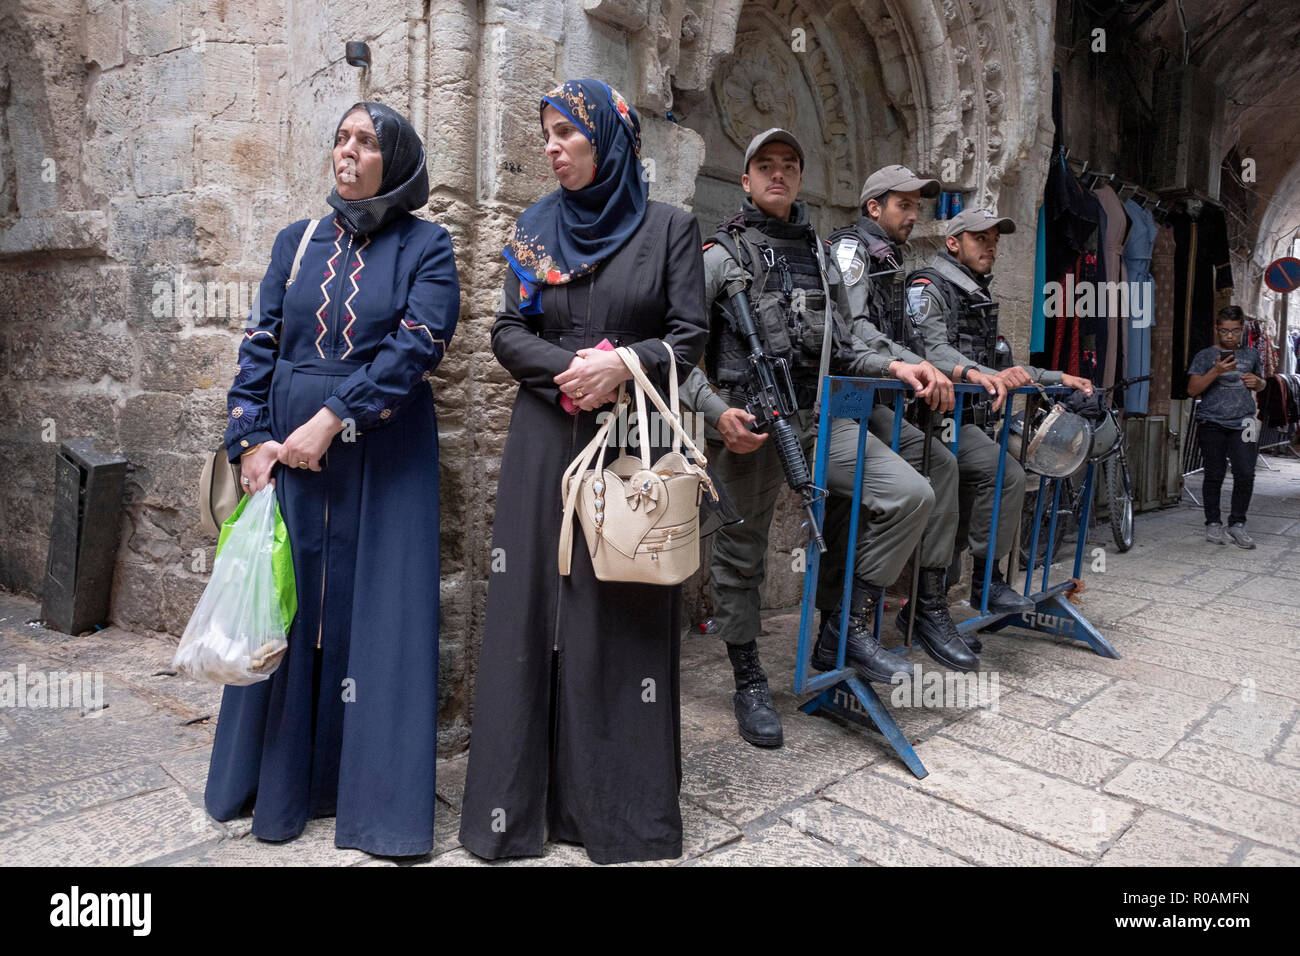 Armed Israeli soldiers in close proximity to Muslim Arab women shoppers in the Old City of Jerusalem in Israel. - Stock Image